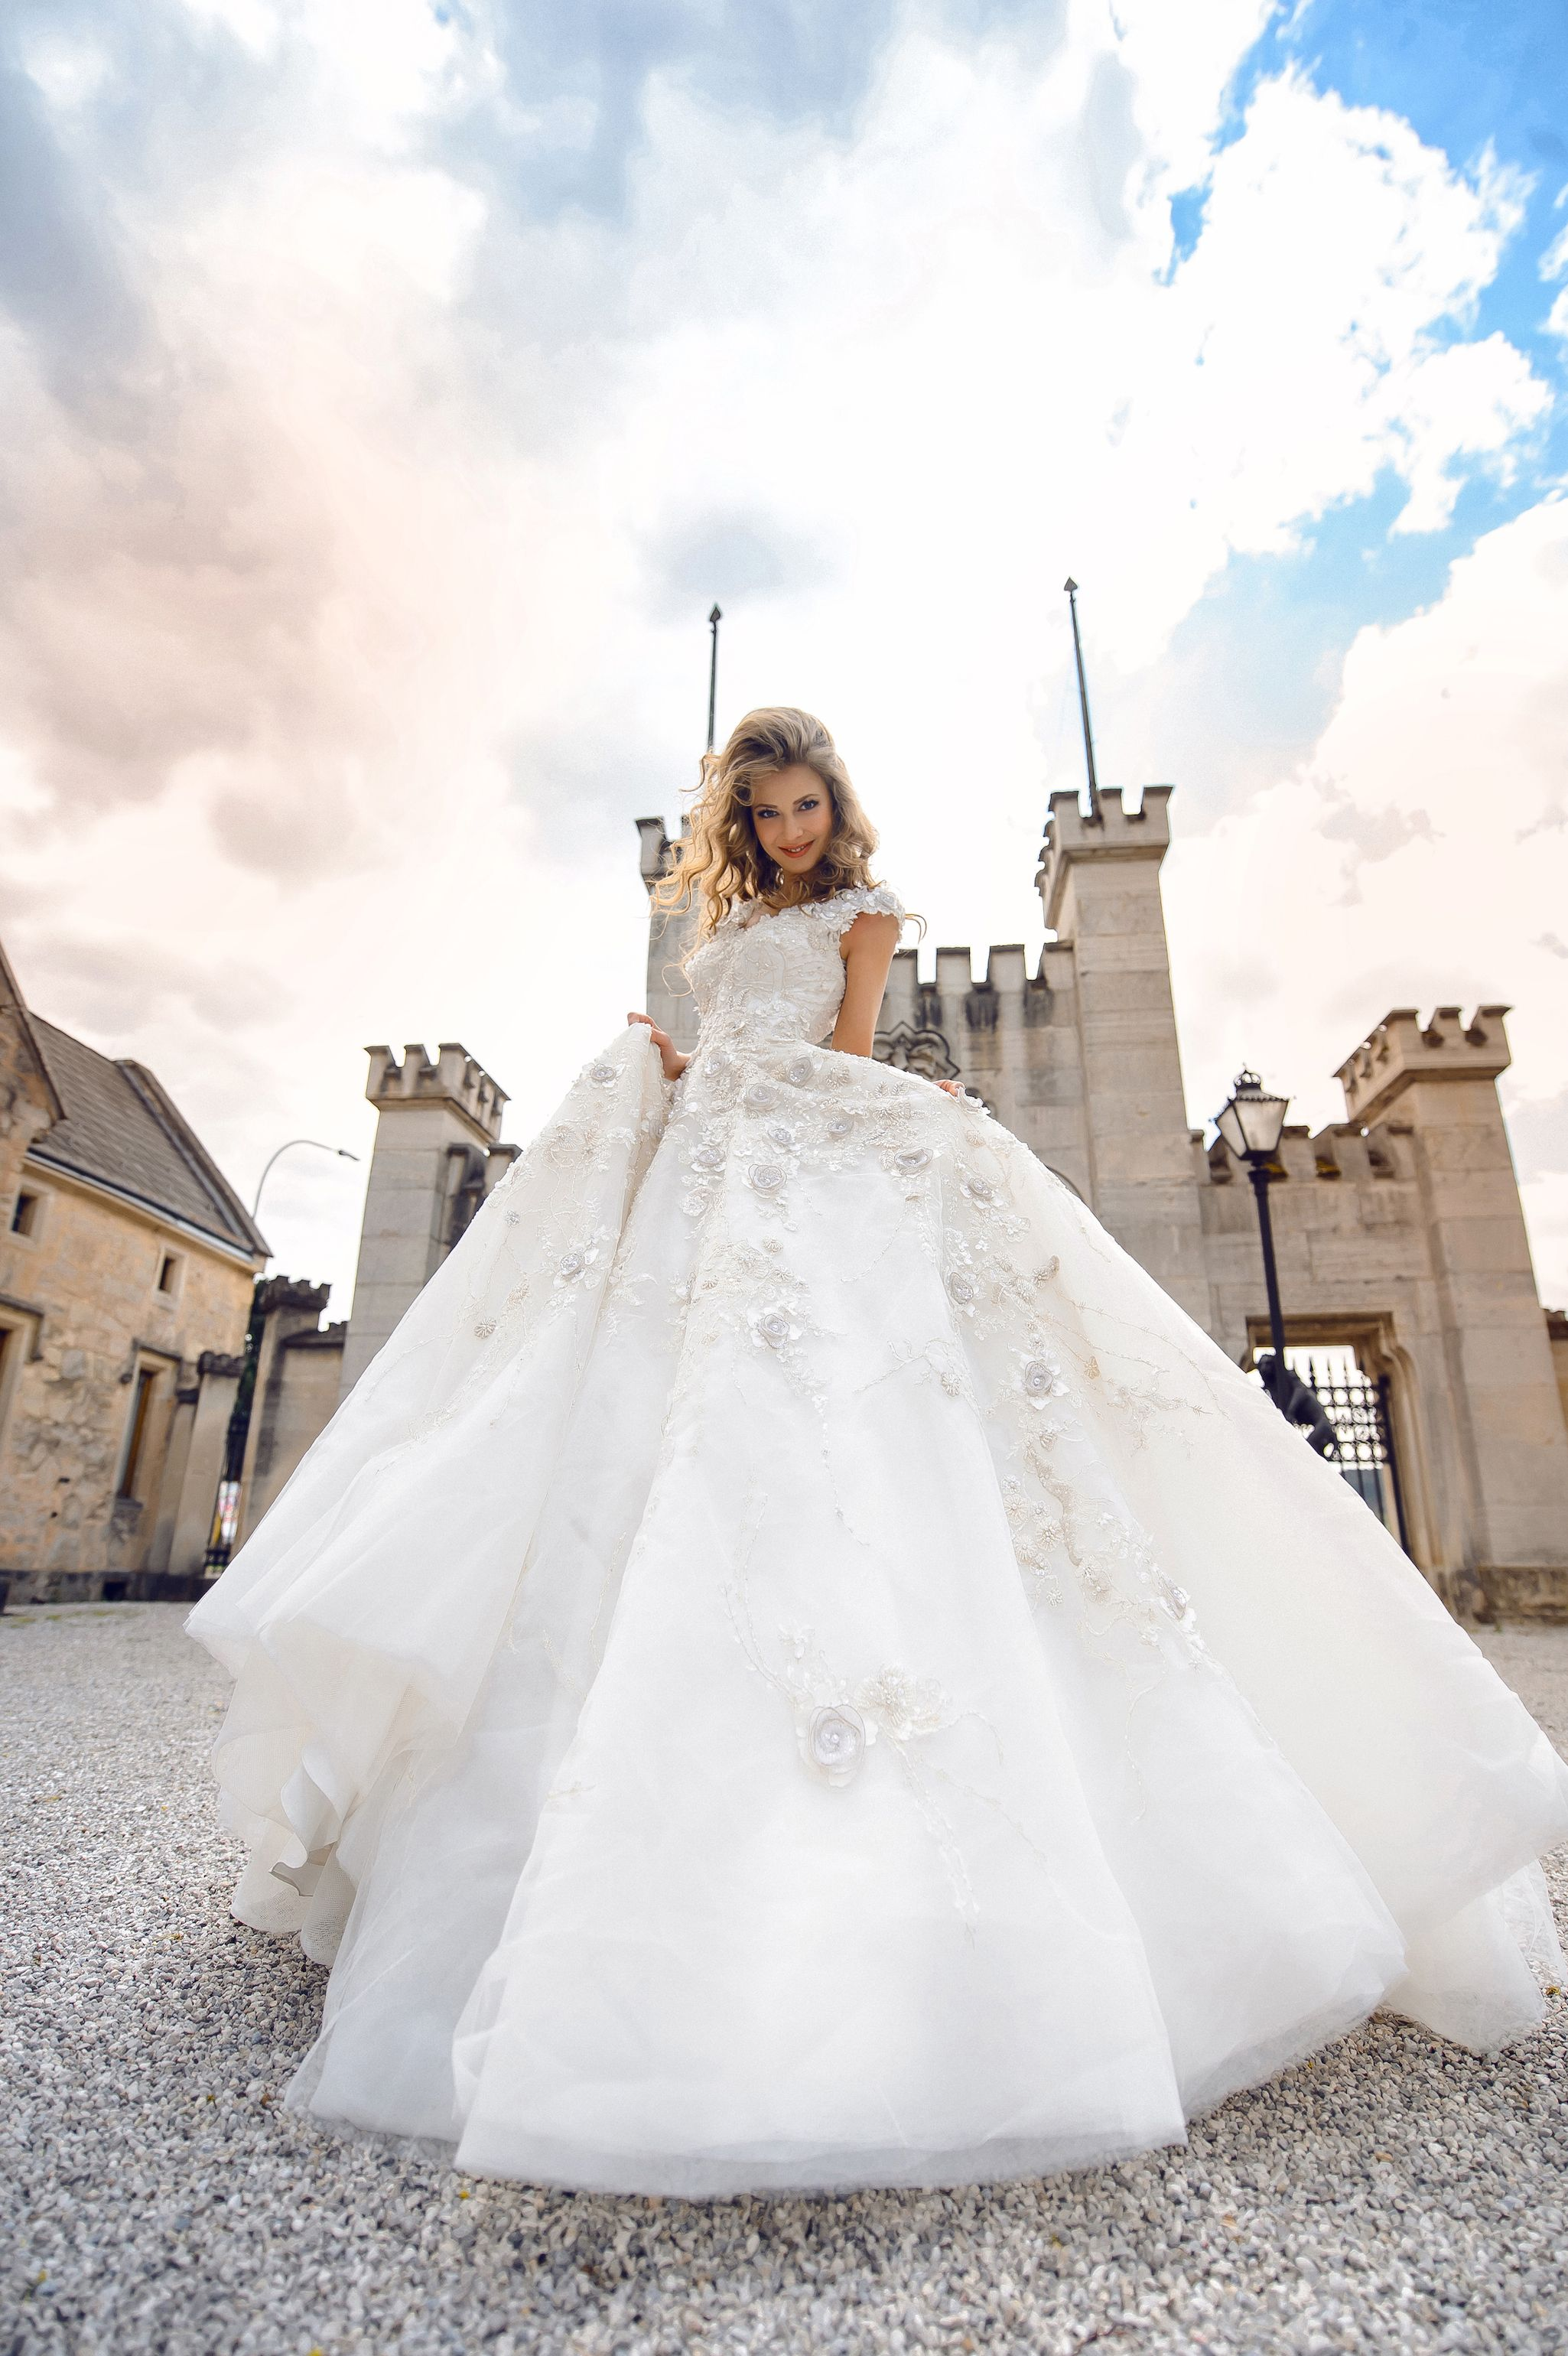 Viennese Salon For Exquisite Bridal And Evening Fashion Bridal